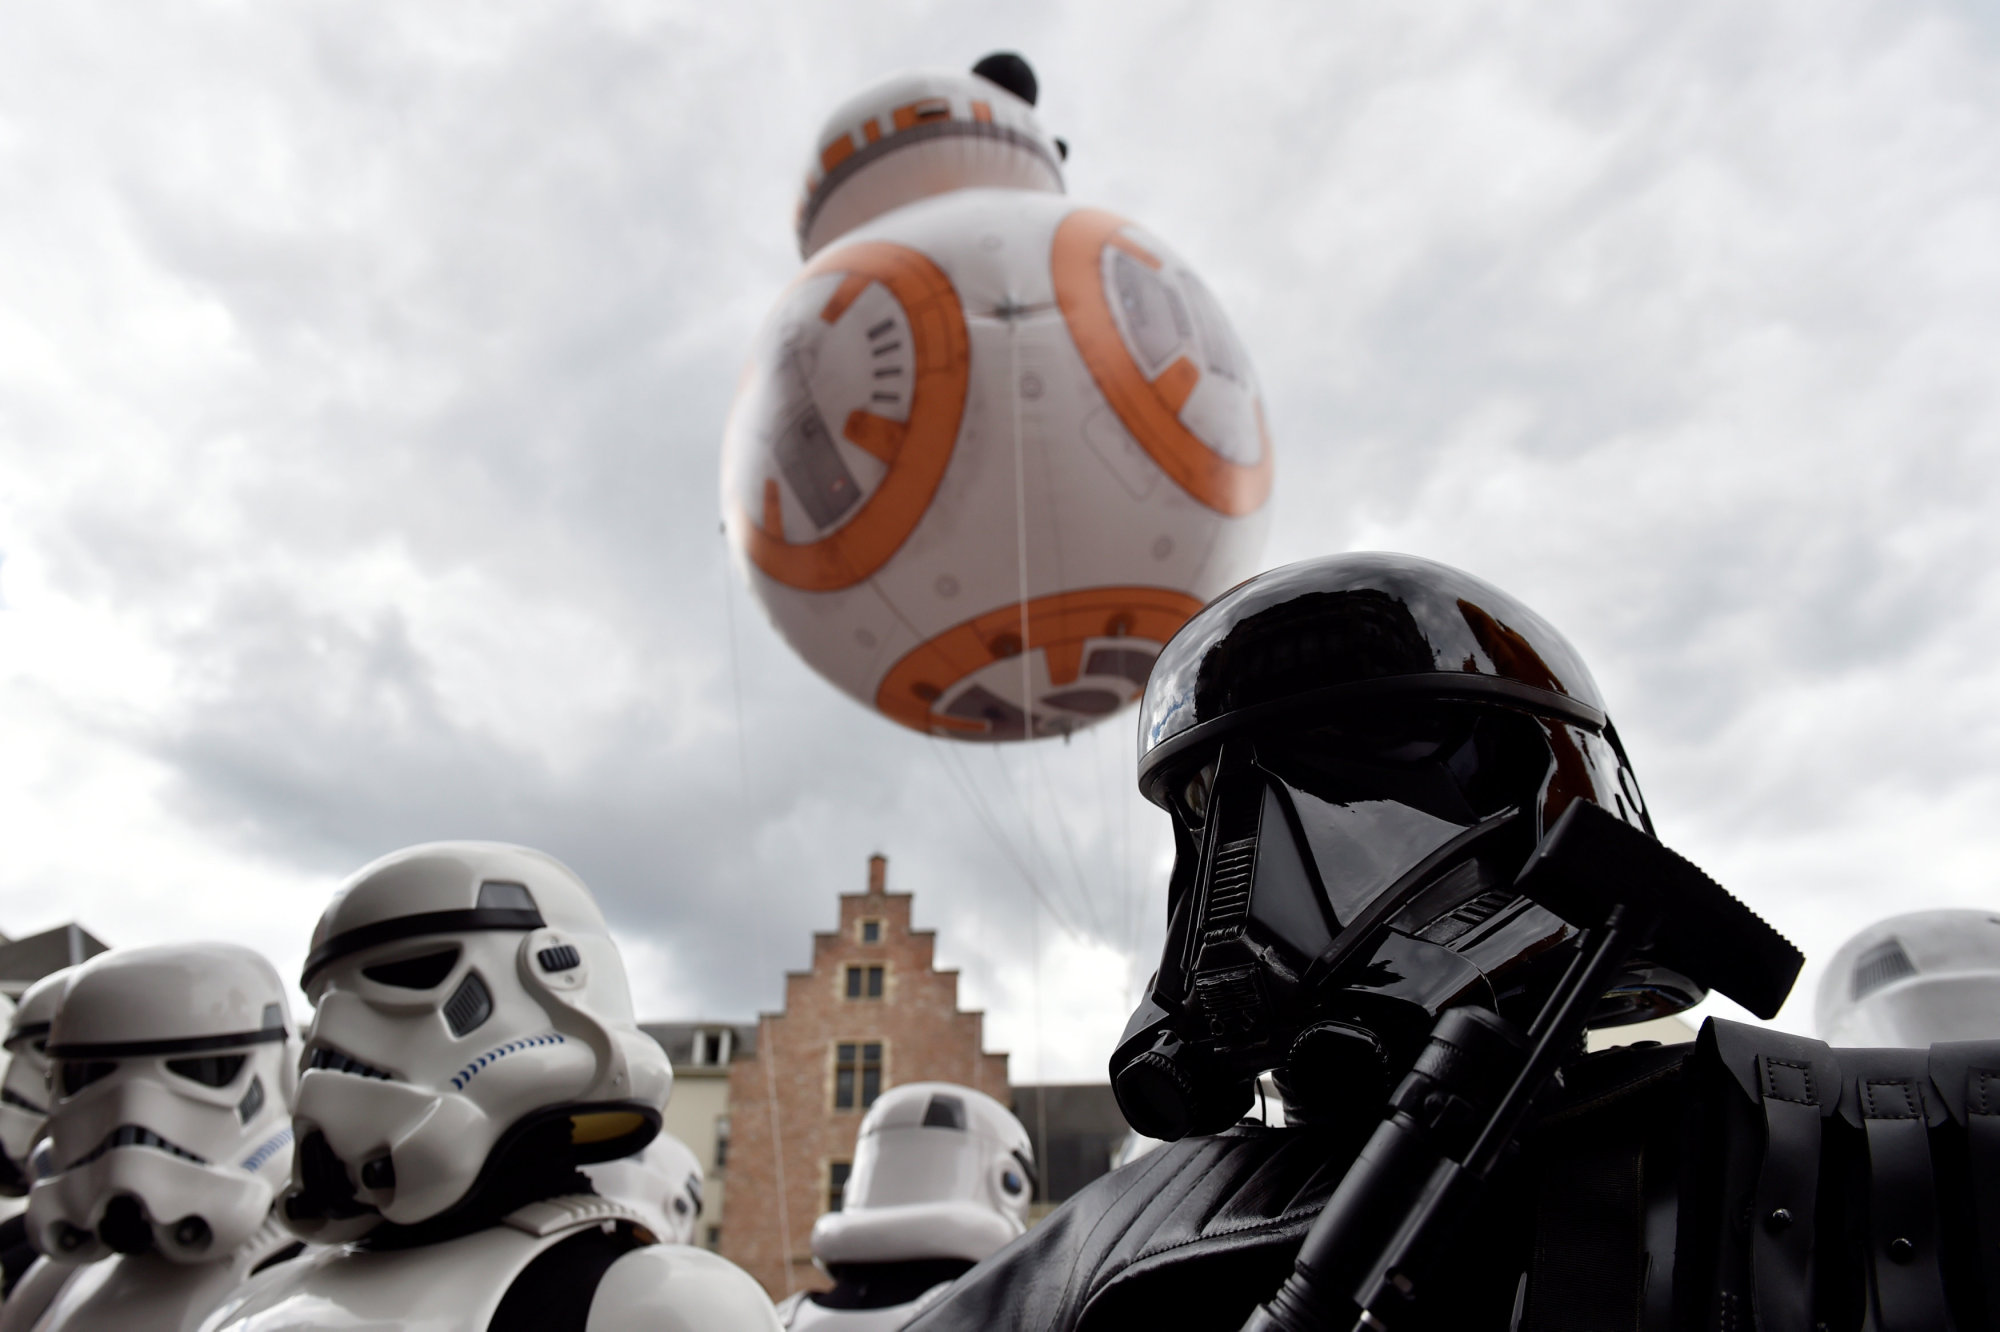 A giant balloon of BB-8 floats behind participants wearing Star Wars costumes during the Balloon Day Parade as part of the Comic Strip Festival in Brussels in September. | REUTERS